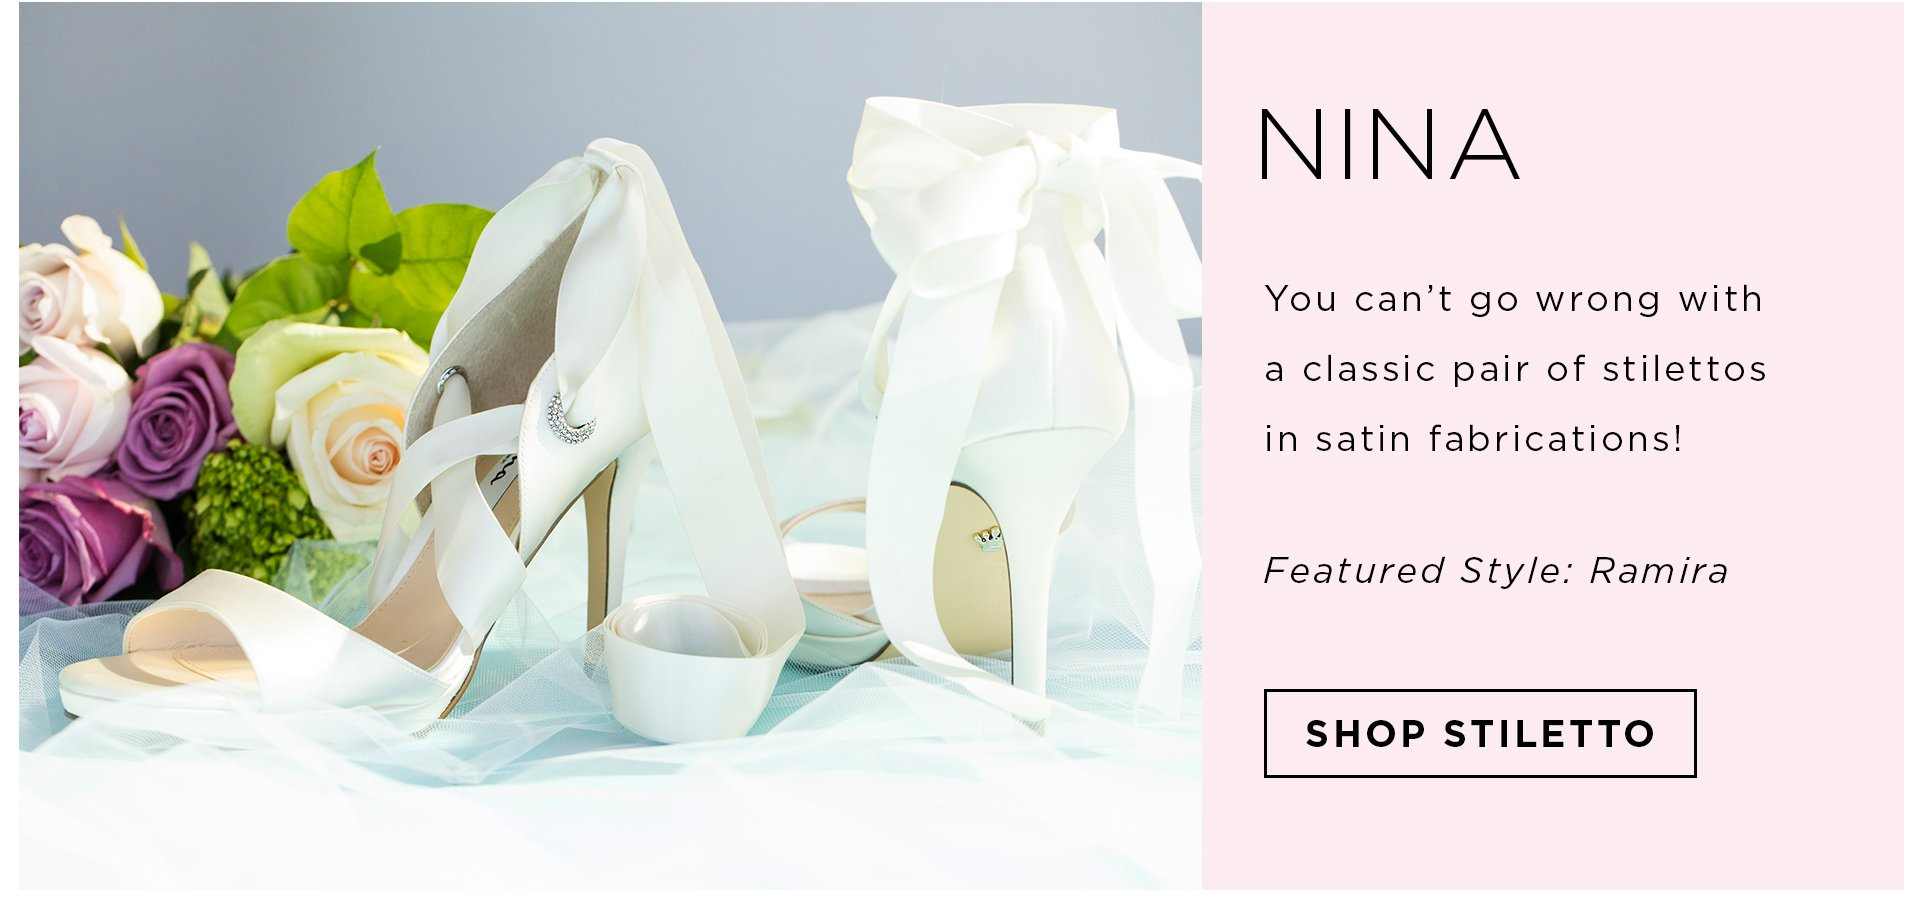 Header Wedding Footwear Favorites Badgley Mischka Shop Nina